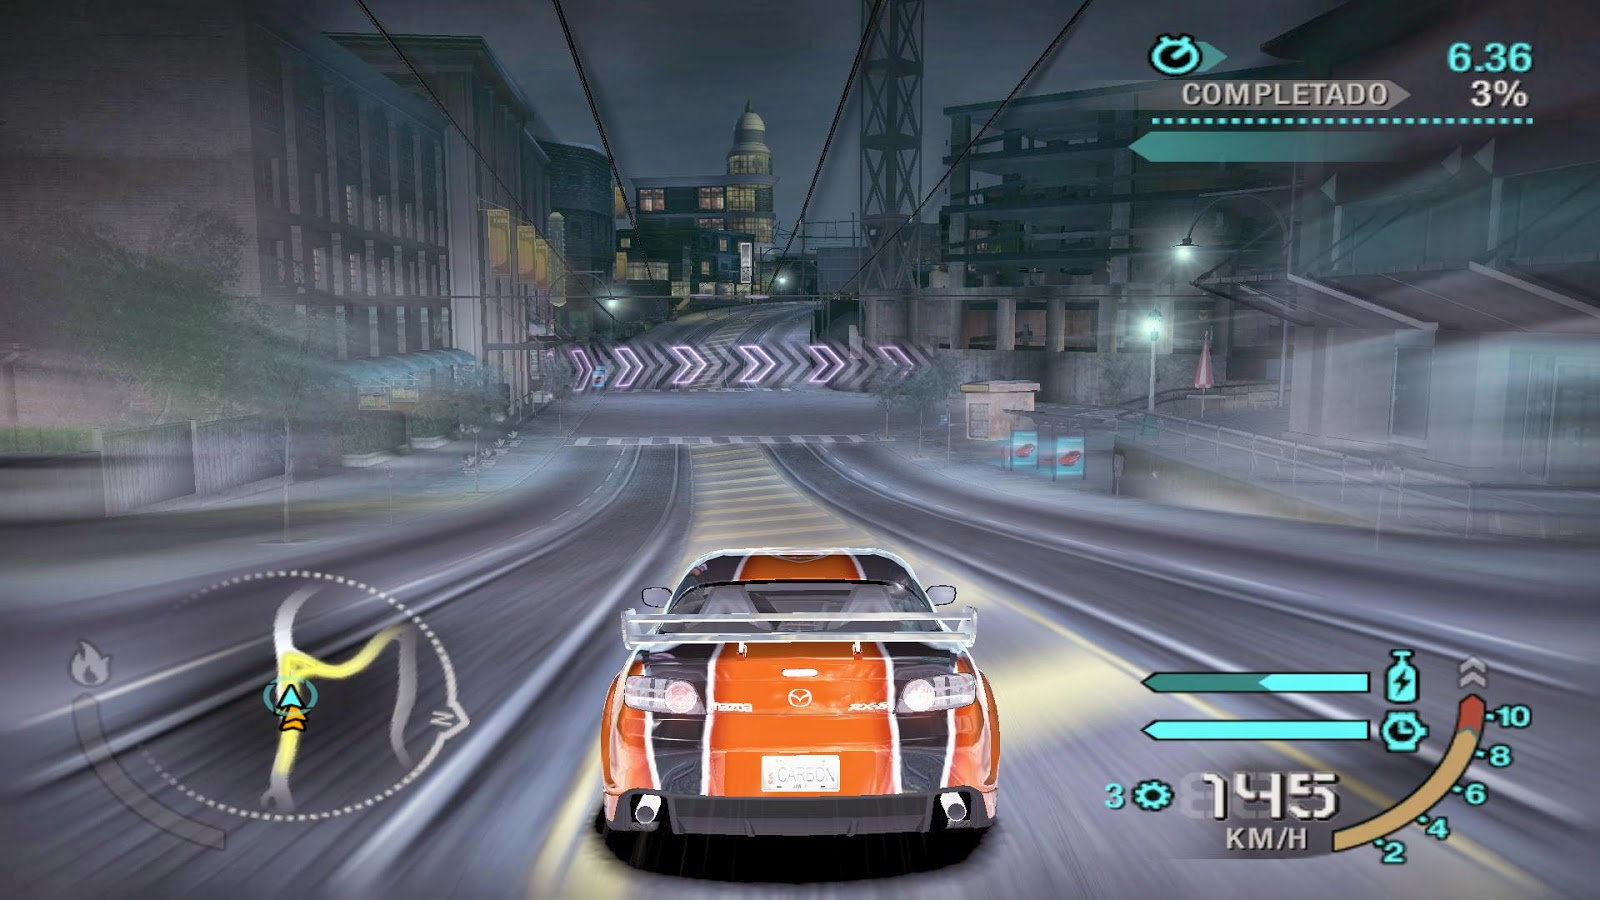 descargar need for speed gratis para pc windows 7